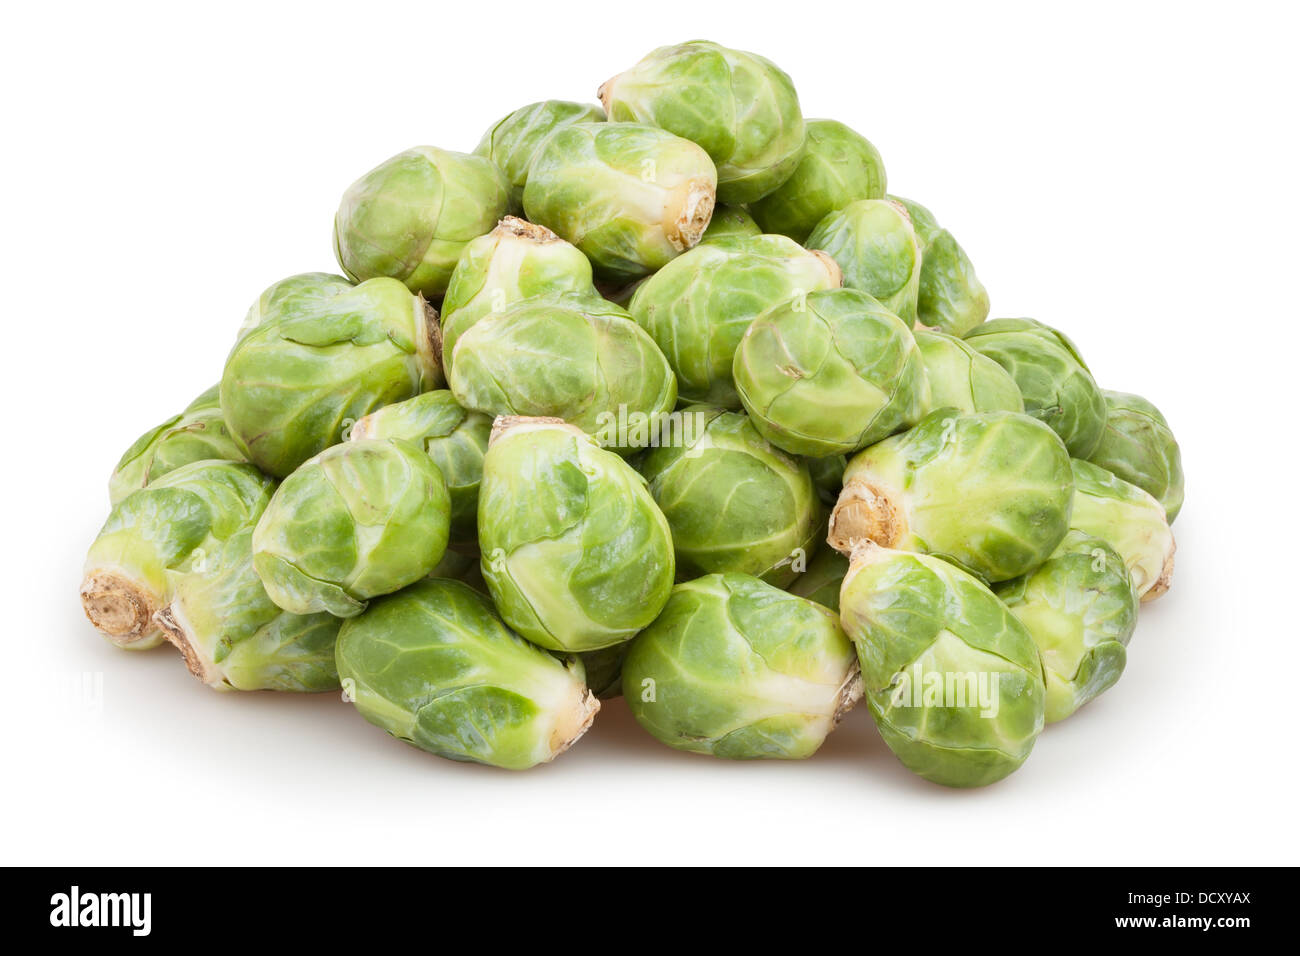 brussels sprouts heap on white background - Stock Image